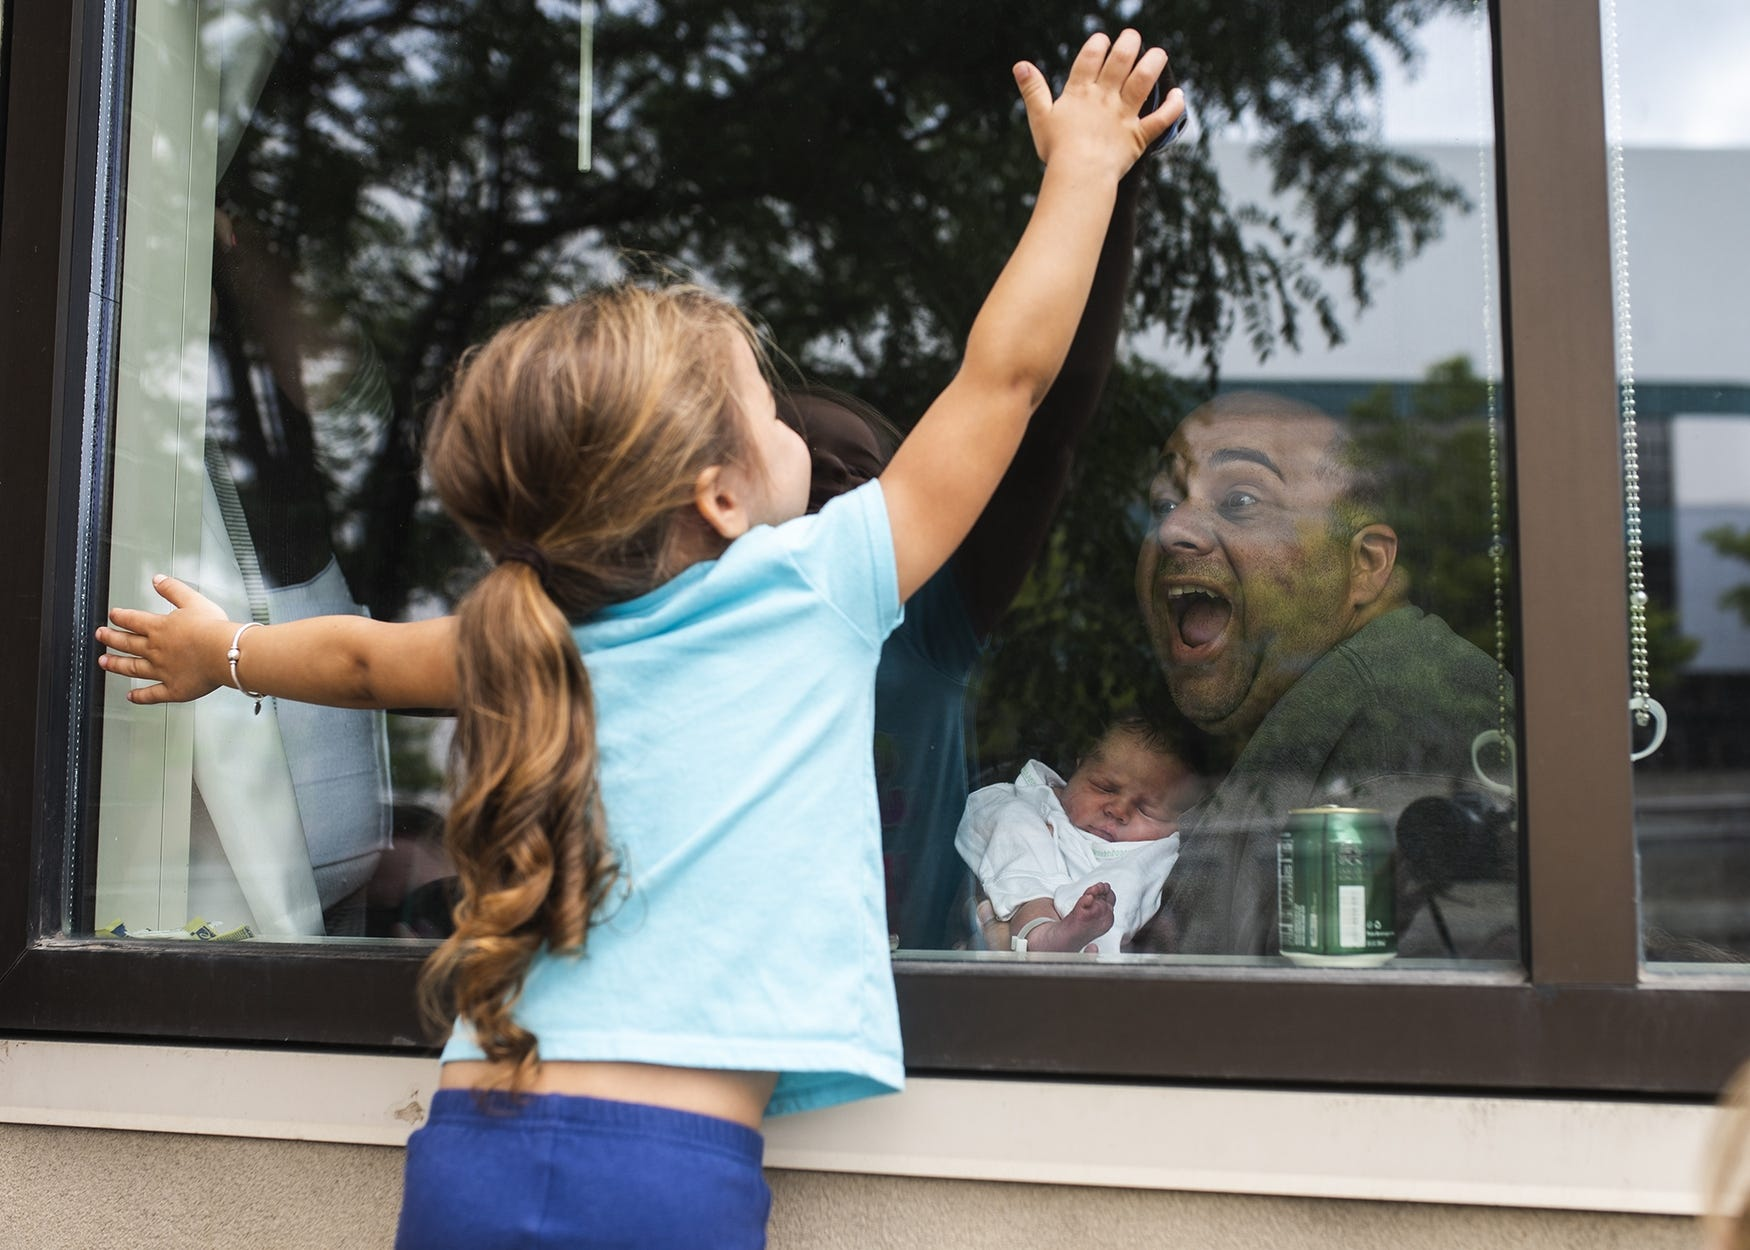 Windows helped make connections: Annistyn Rivera, 3, meets her new baby sister Francesca through the window at St. Vincent Hospital on July 15, 2020.